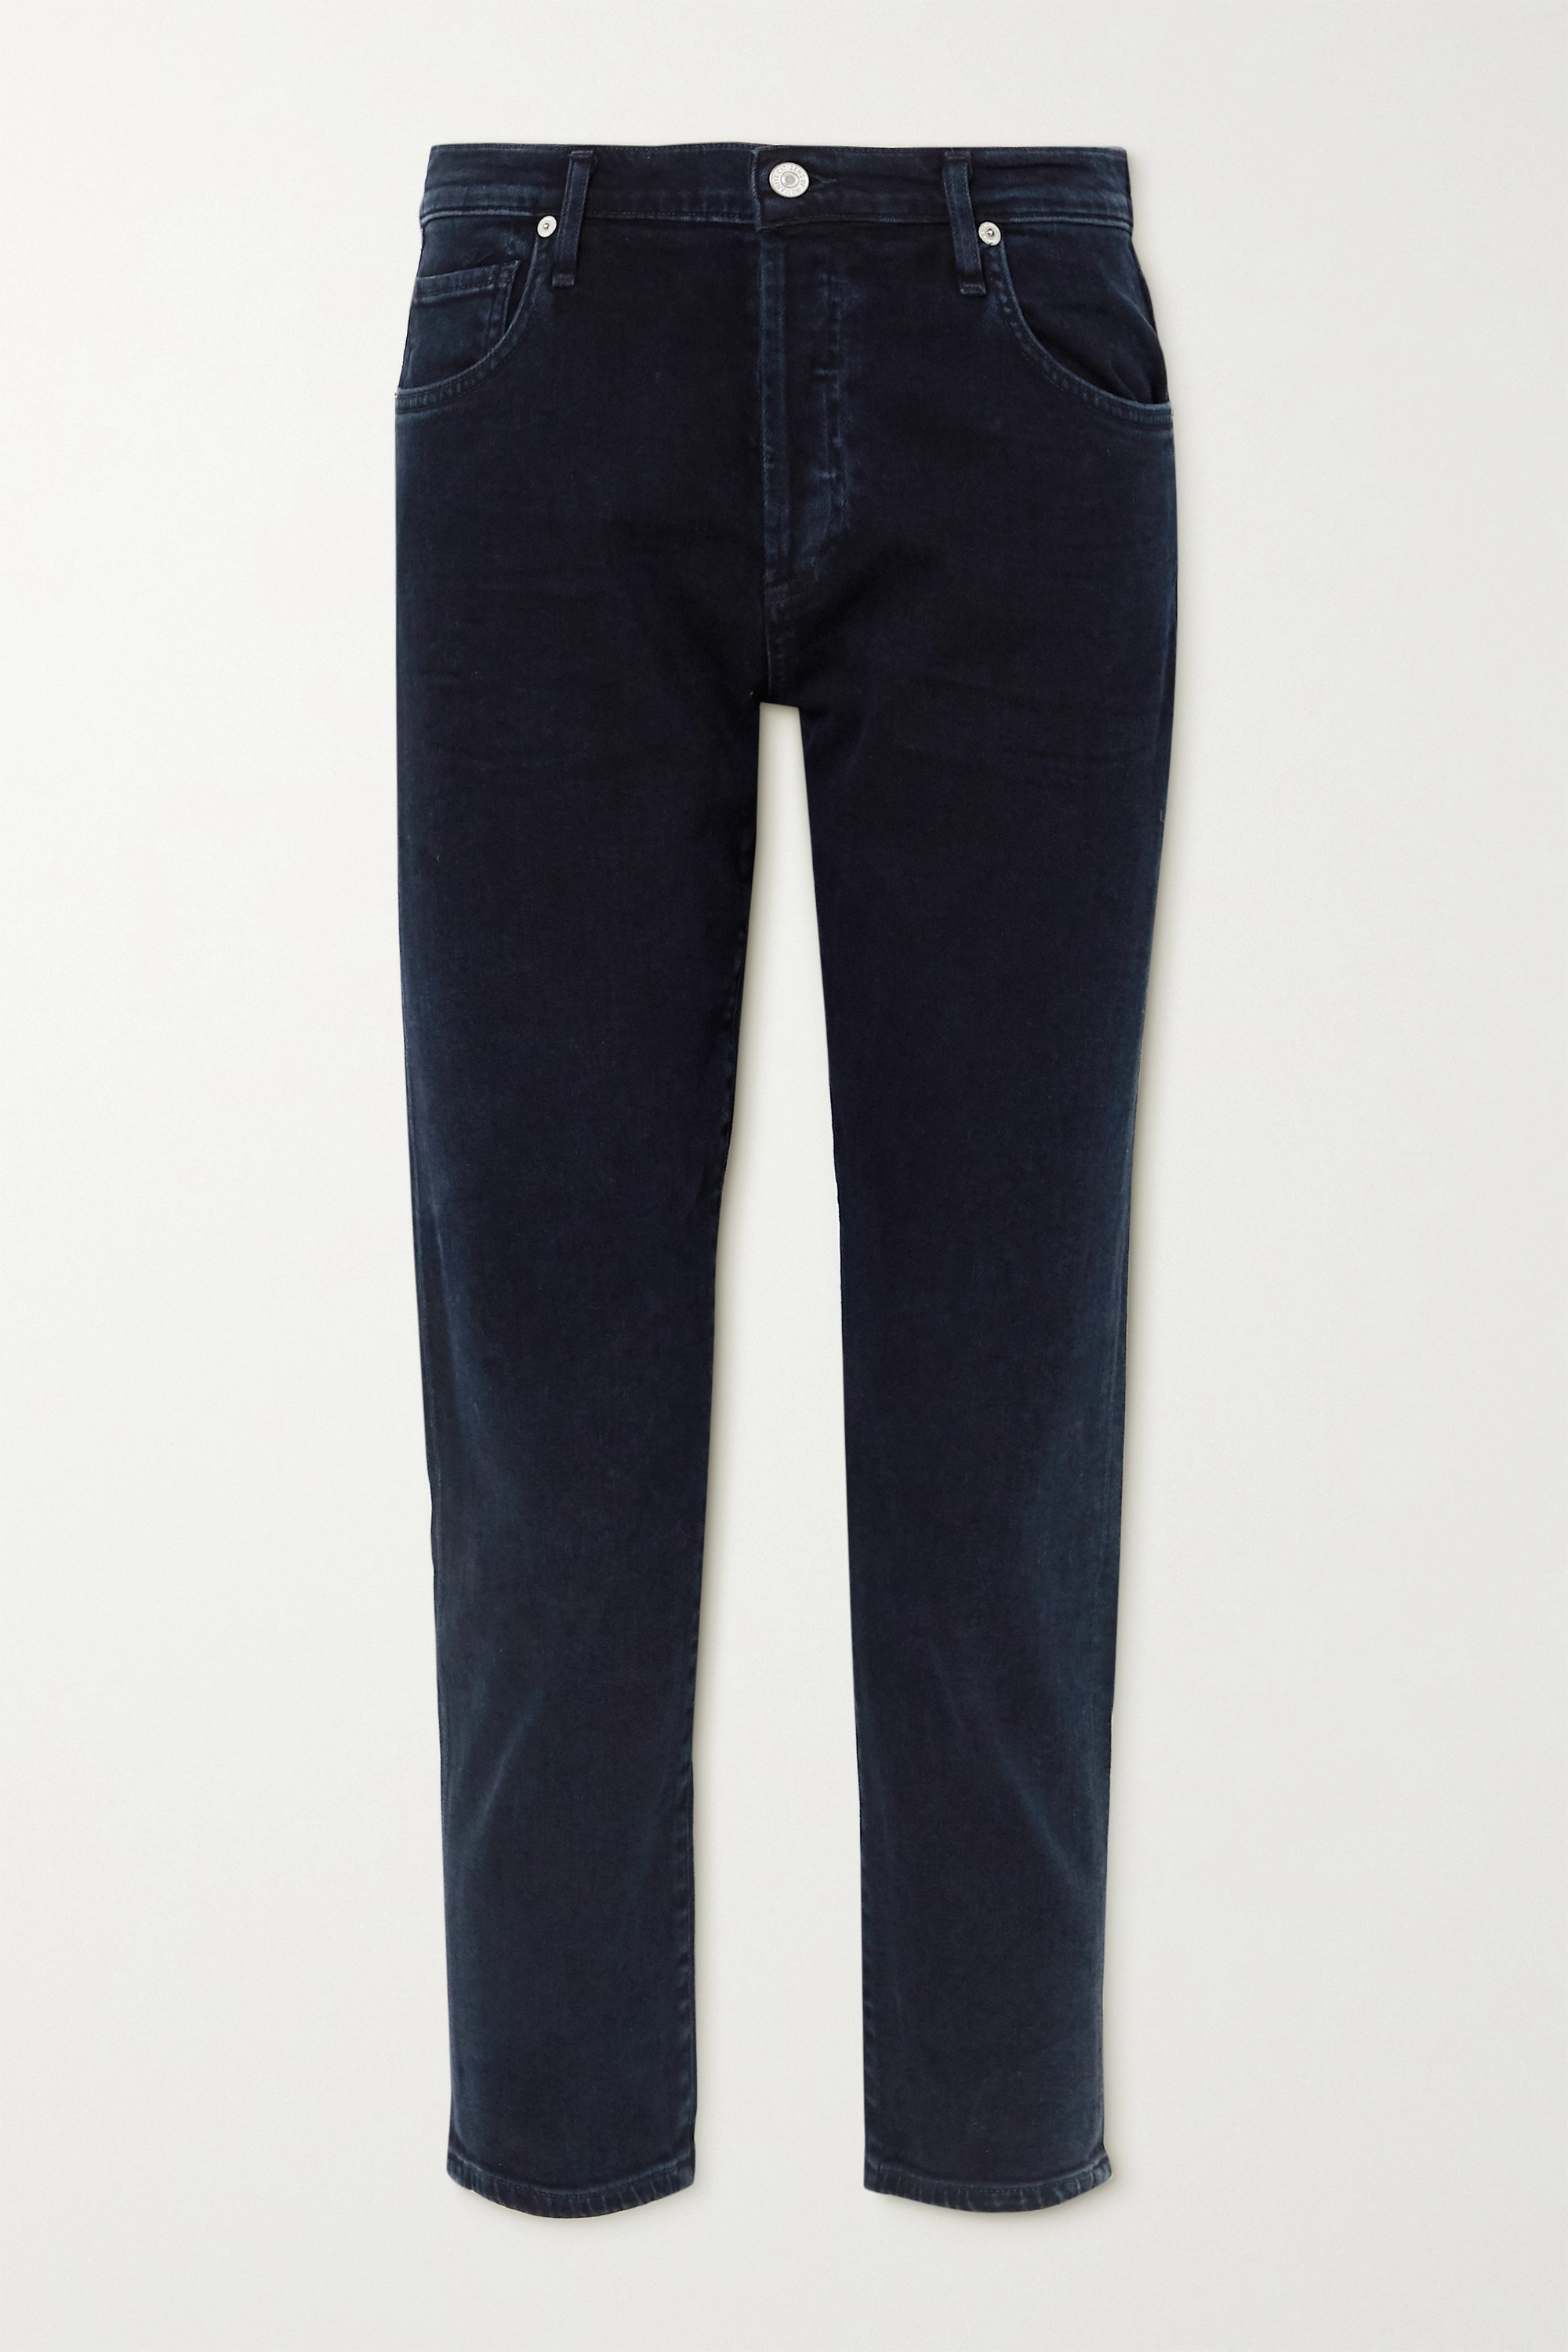 CITIZENS OF HUMANITY Emerson mid-rise straight-leg jeans